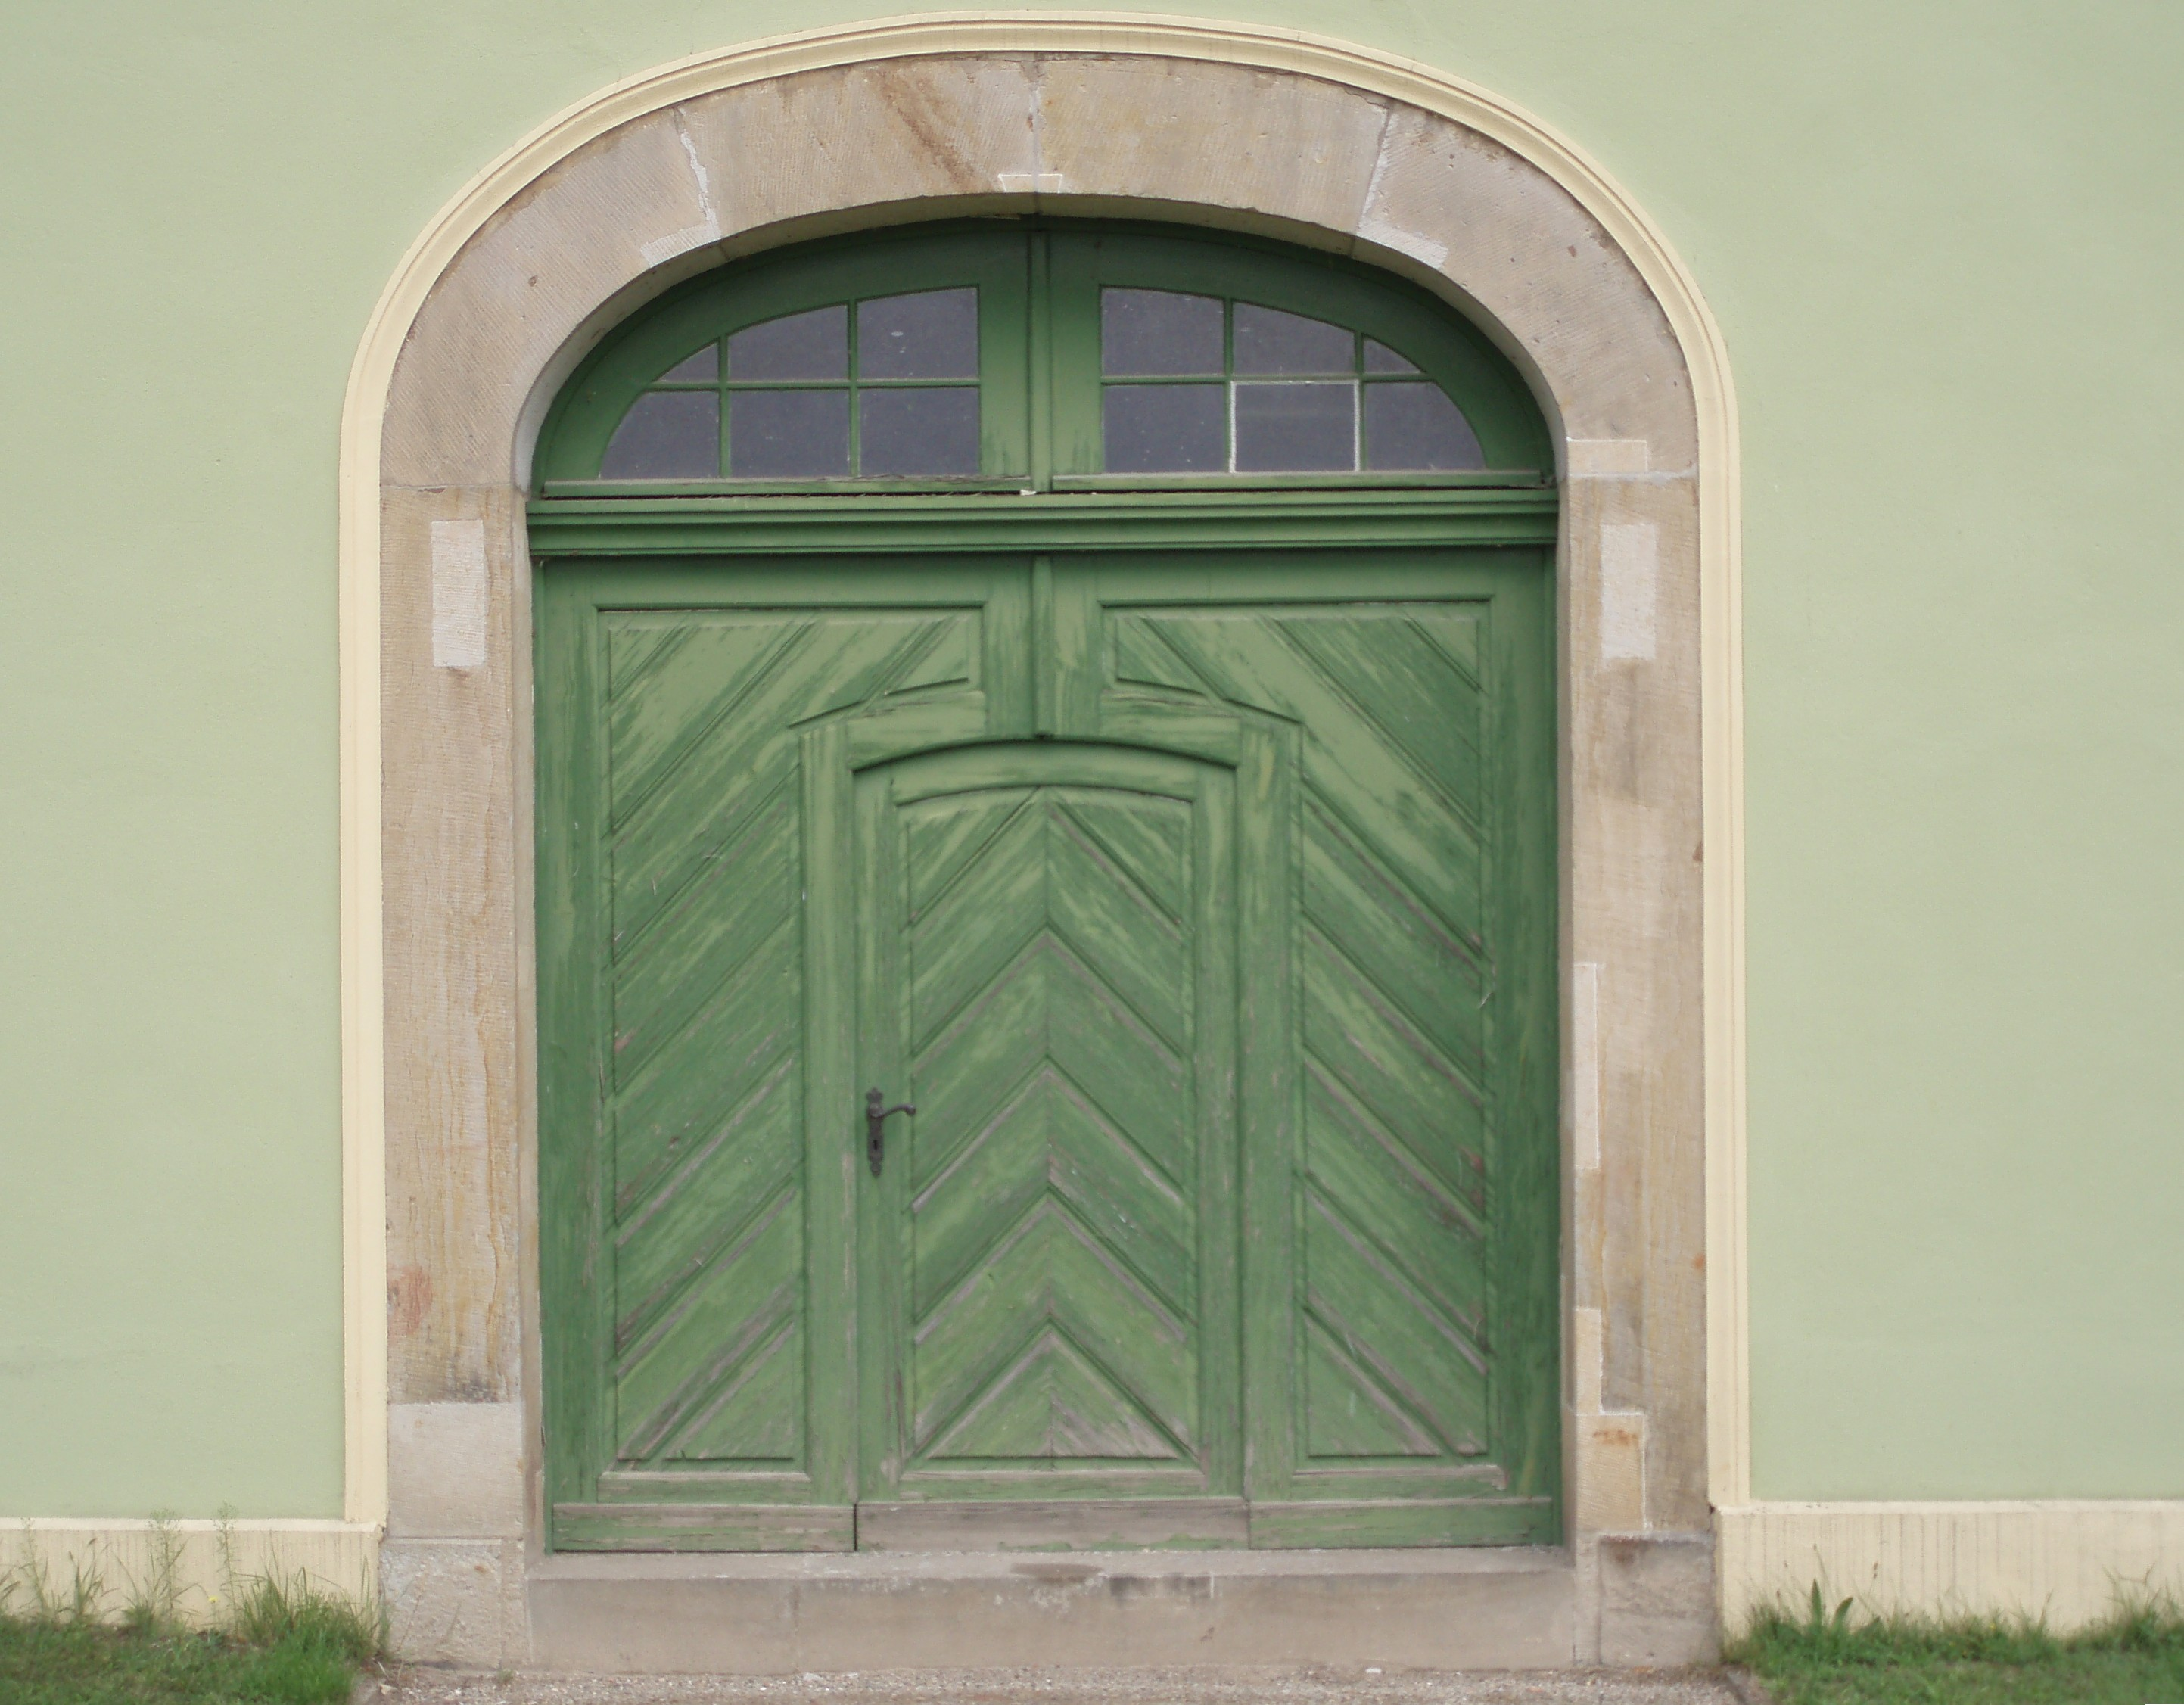 FileGreen-wooden-door-entrance.jpg & File:Green-wooden-door-entrance.jpg - Wikimedia Commons